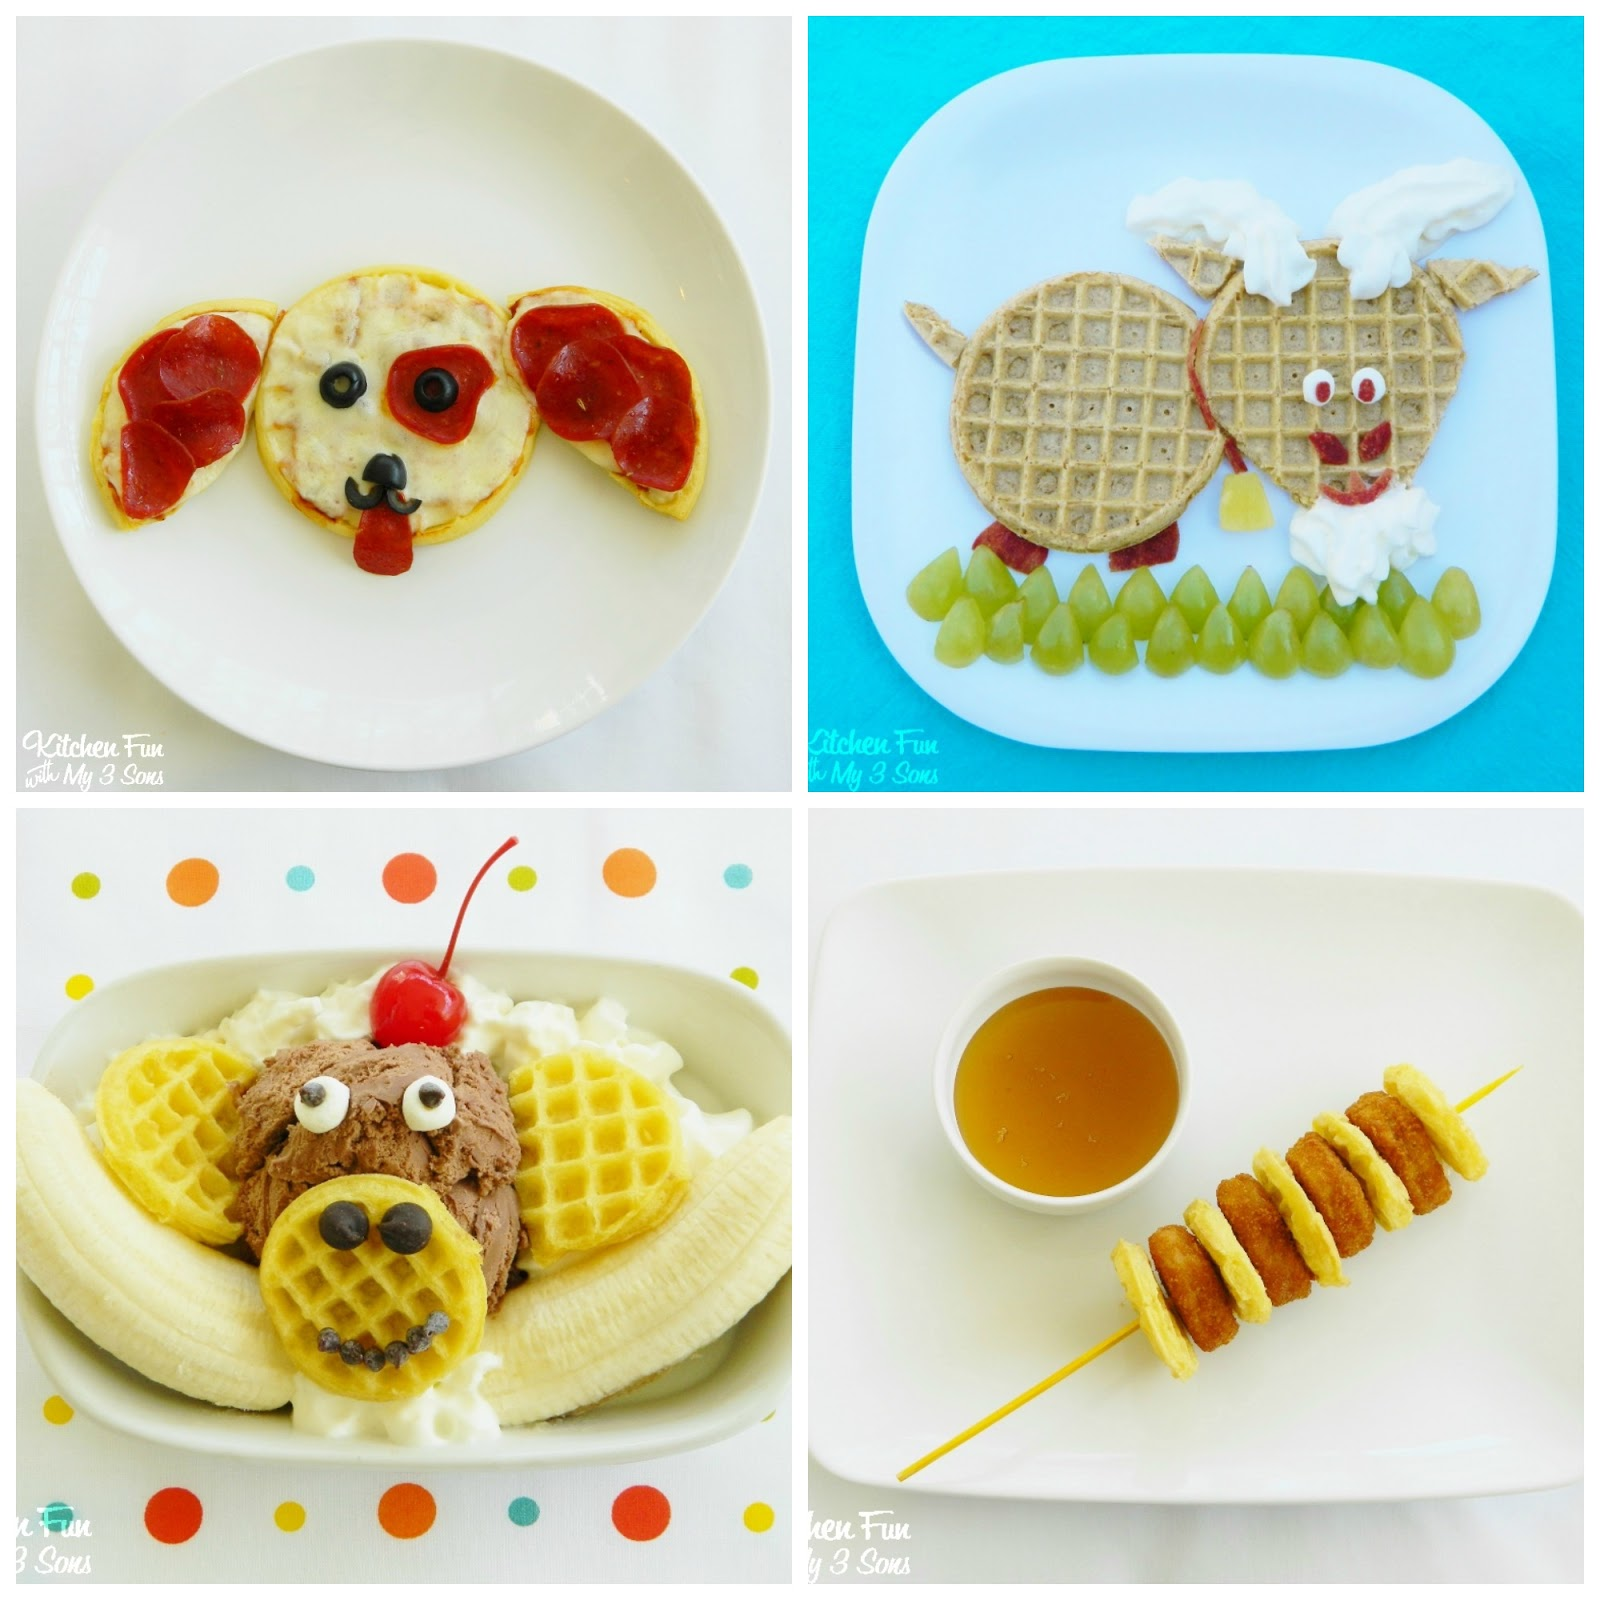 Kitchen Fun And Crafty Friday Link Party 167: Kitchen Fun And Crafty Friday Link Party #60